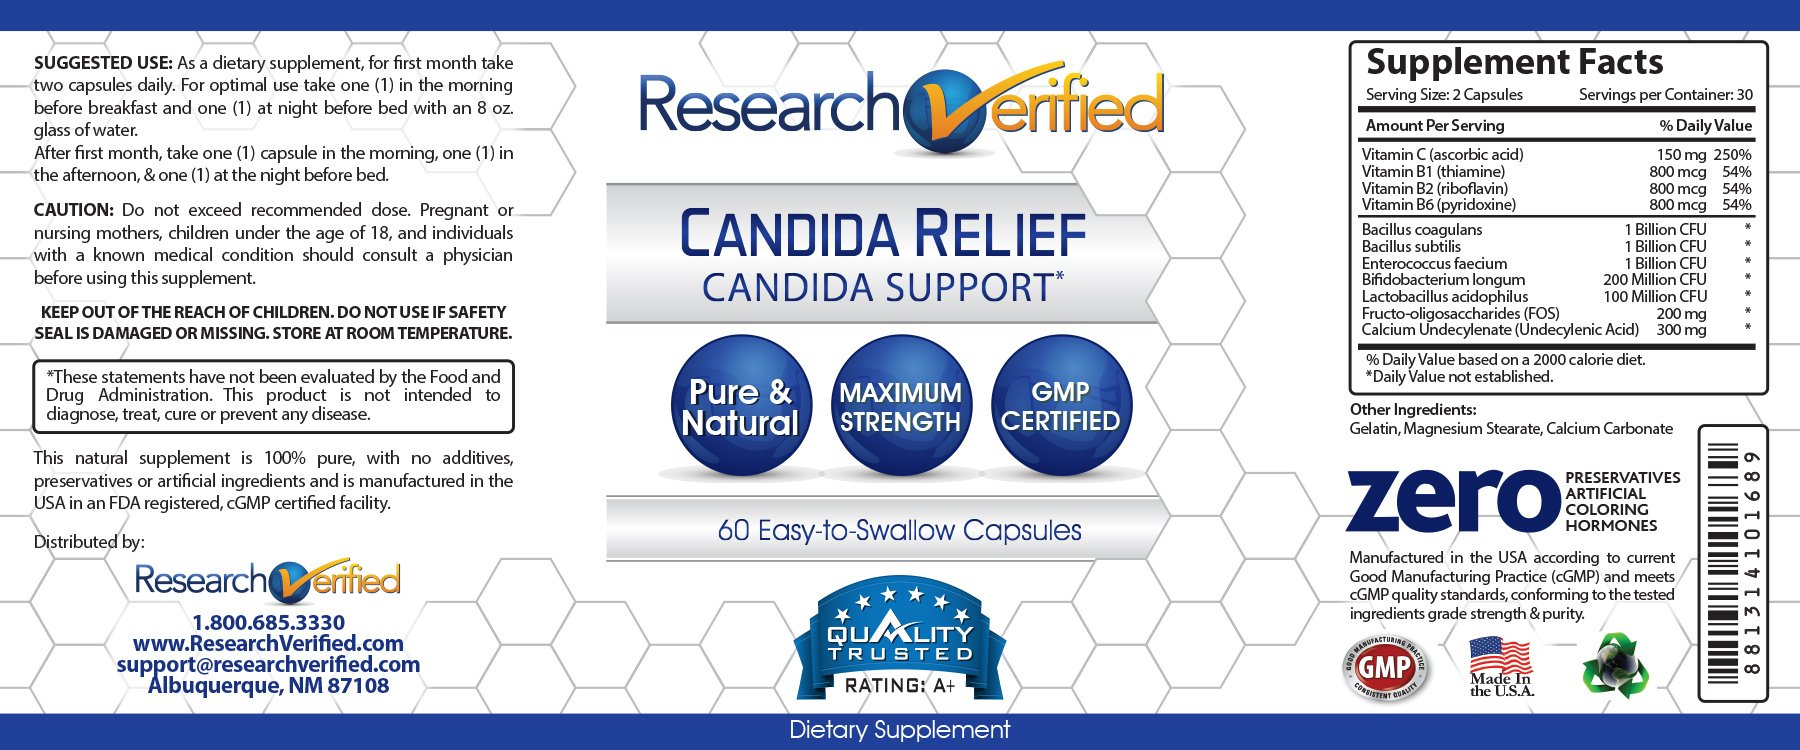 Research Verified Candida Relief - #1 Yeast Infection & Candida Supplement - 100% Natural - w/ 5 strains of probiotic healthy bacteria and Vitamin B & C - 100% Money Back - 6 Bottles (6 Months Supply) by Research Verified (Image #3)